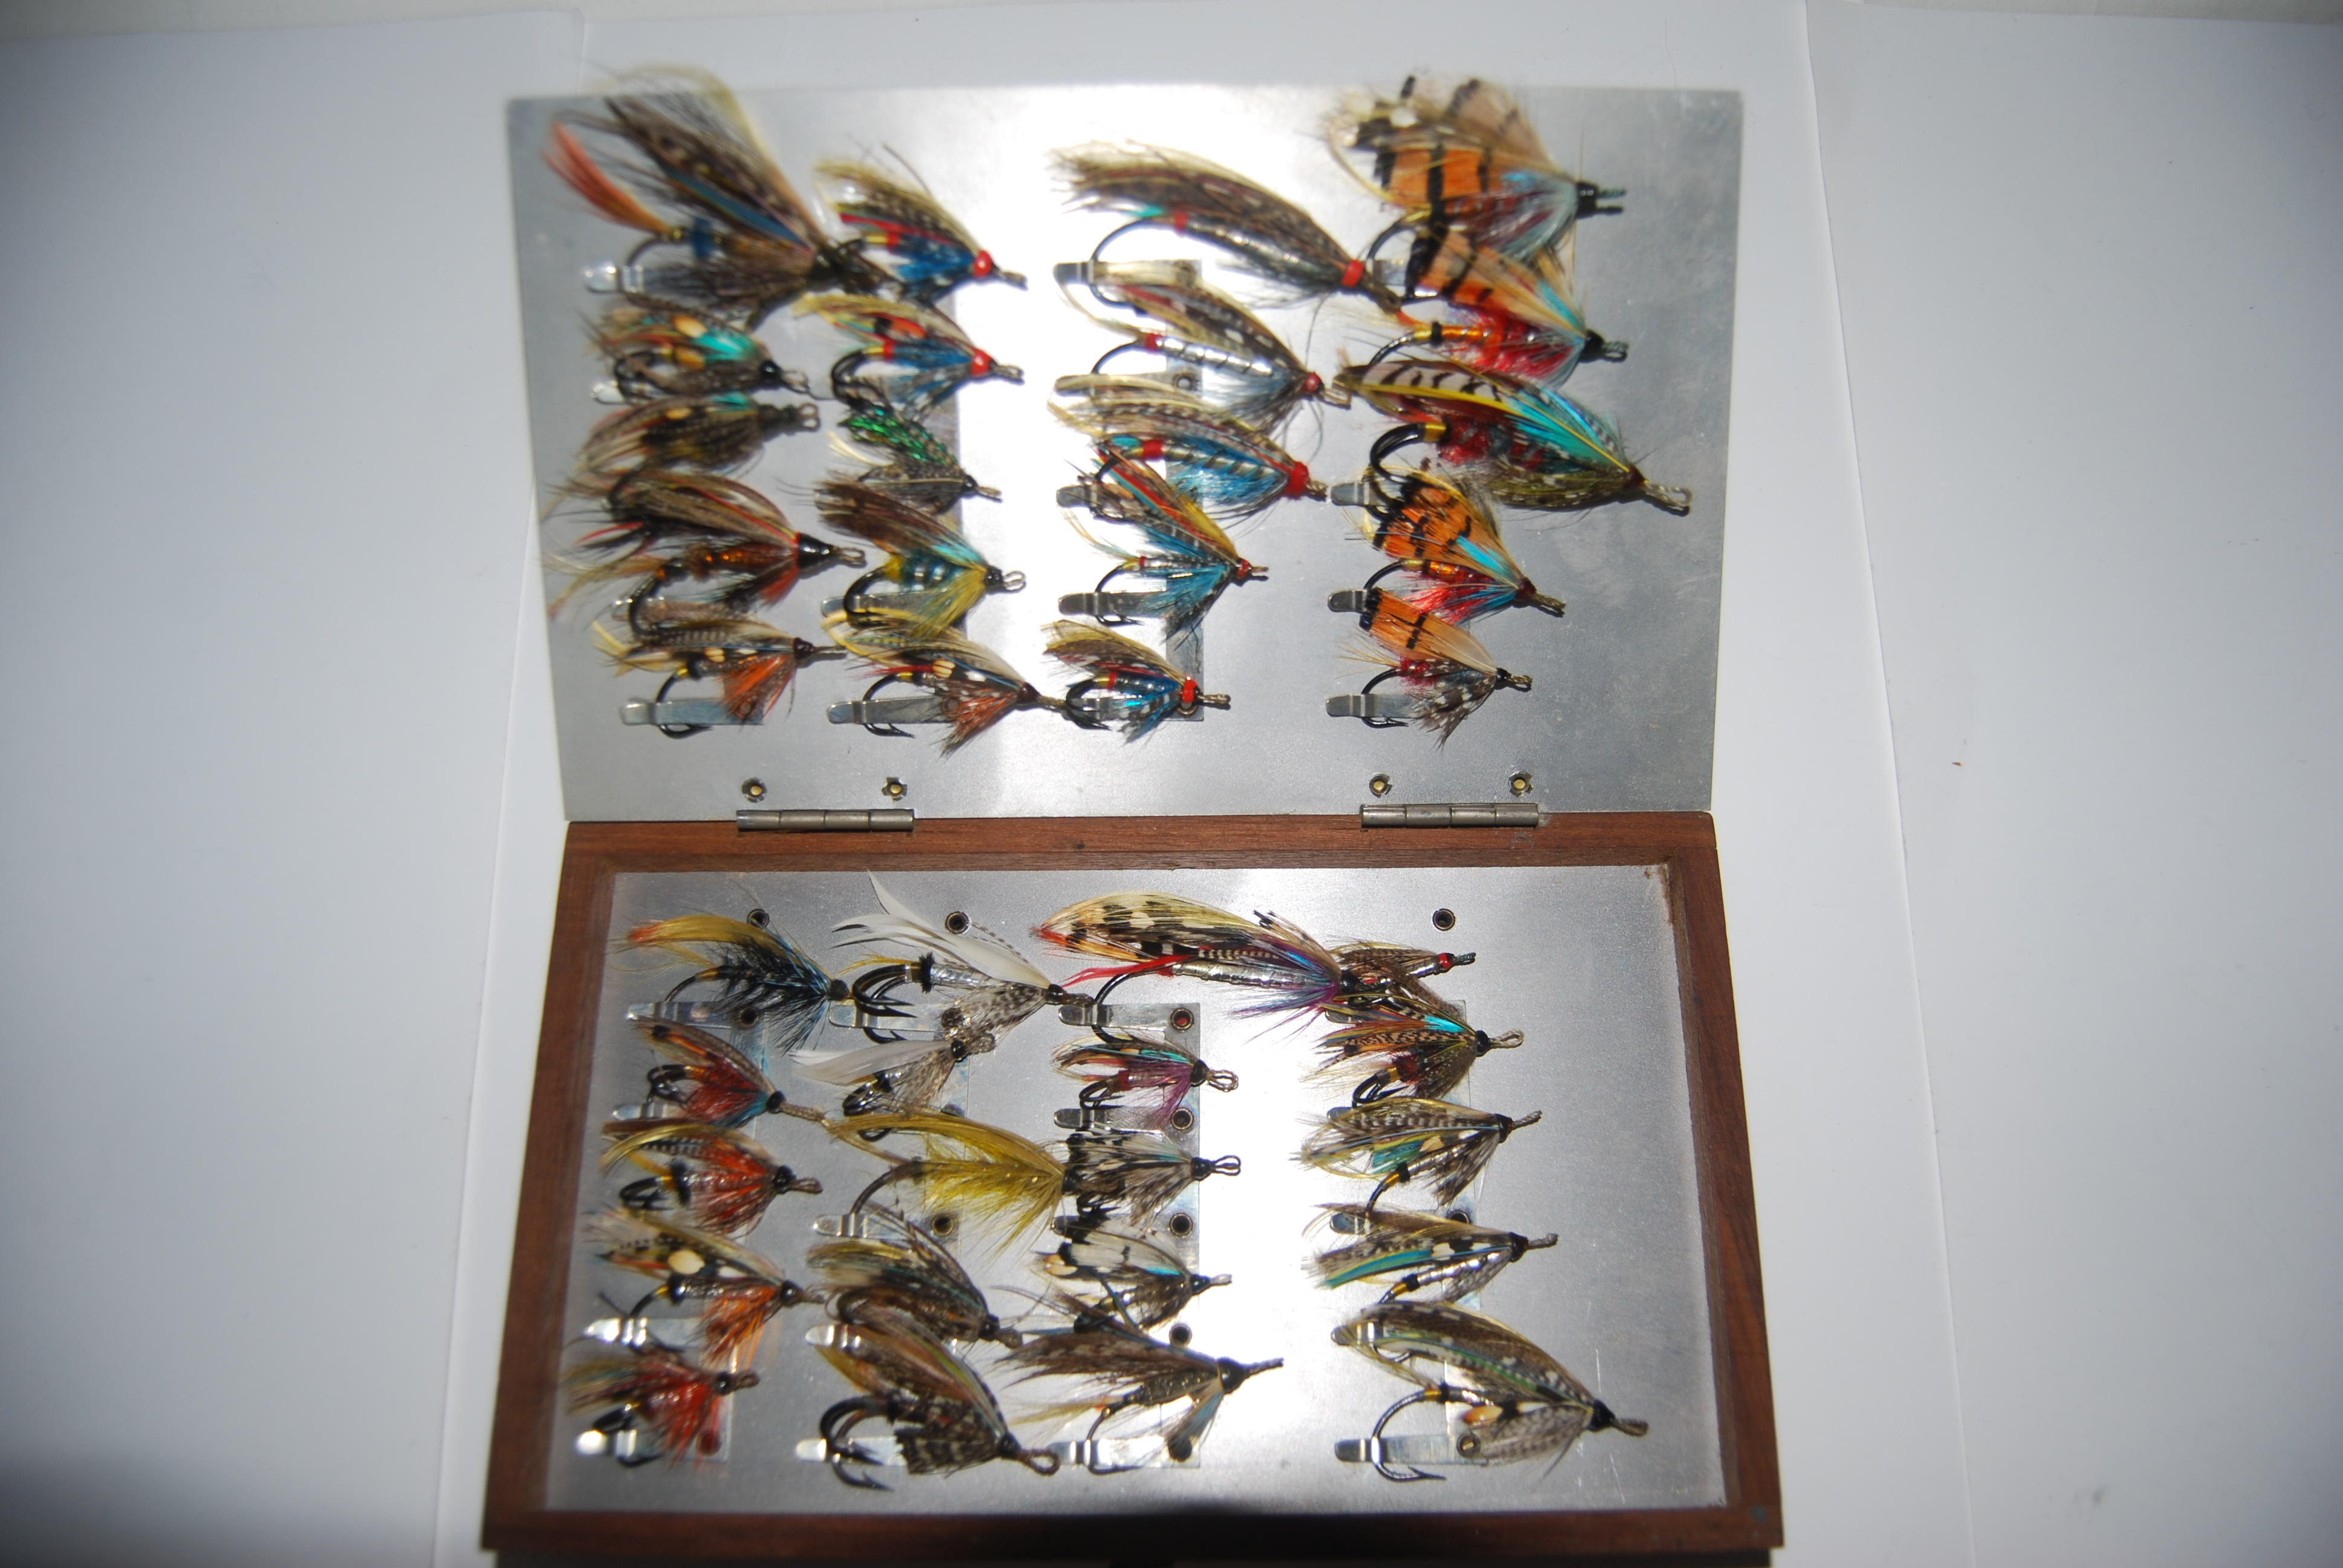 Image for EARLY SALMON FLY STOCK CASE WITH FOUR WALLET INSERTS Holding 320 GUT-EYED FULL DRESSED SALMON FLIES on Salmon Fly Clips.   8 1/2 in. x 5 in. x 4 1/4 in. Circa 1911-1918.